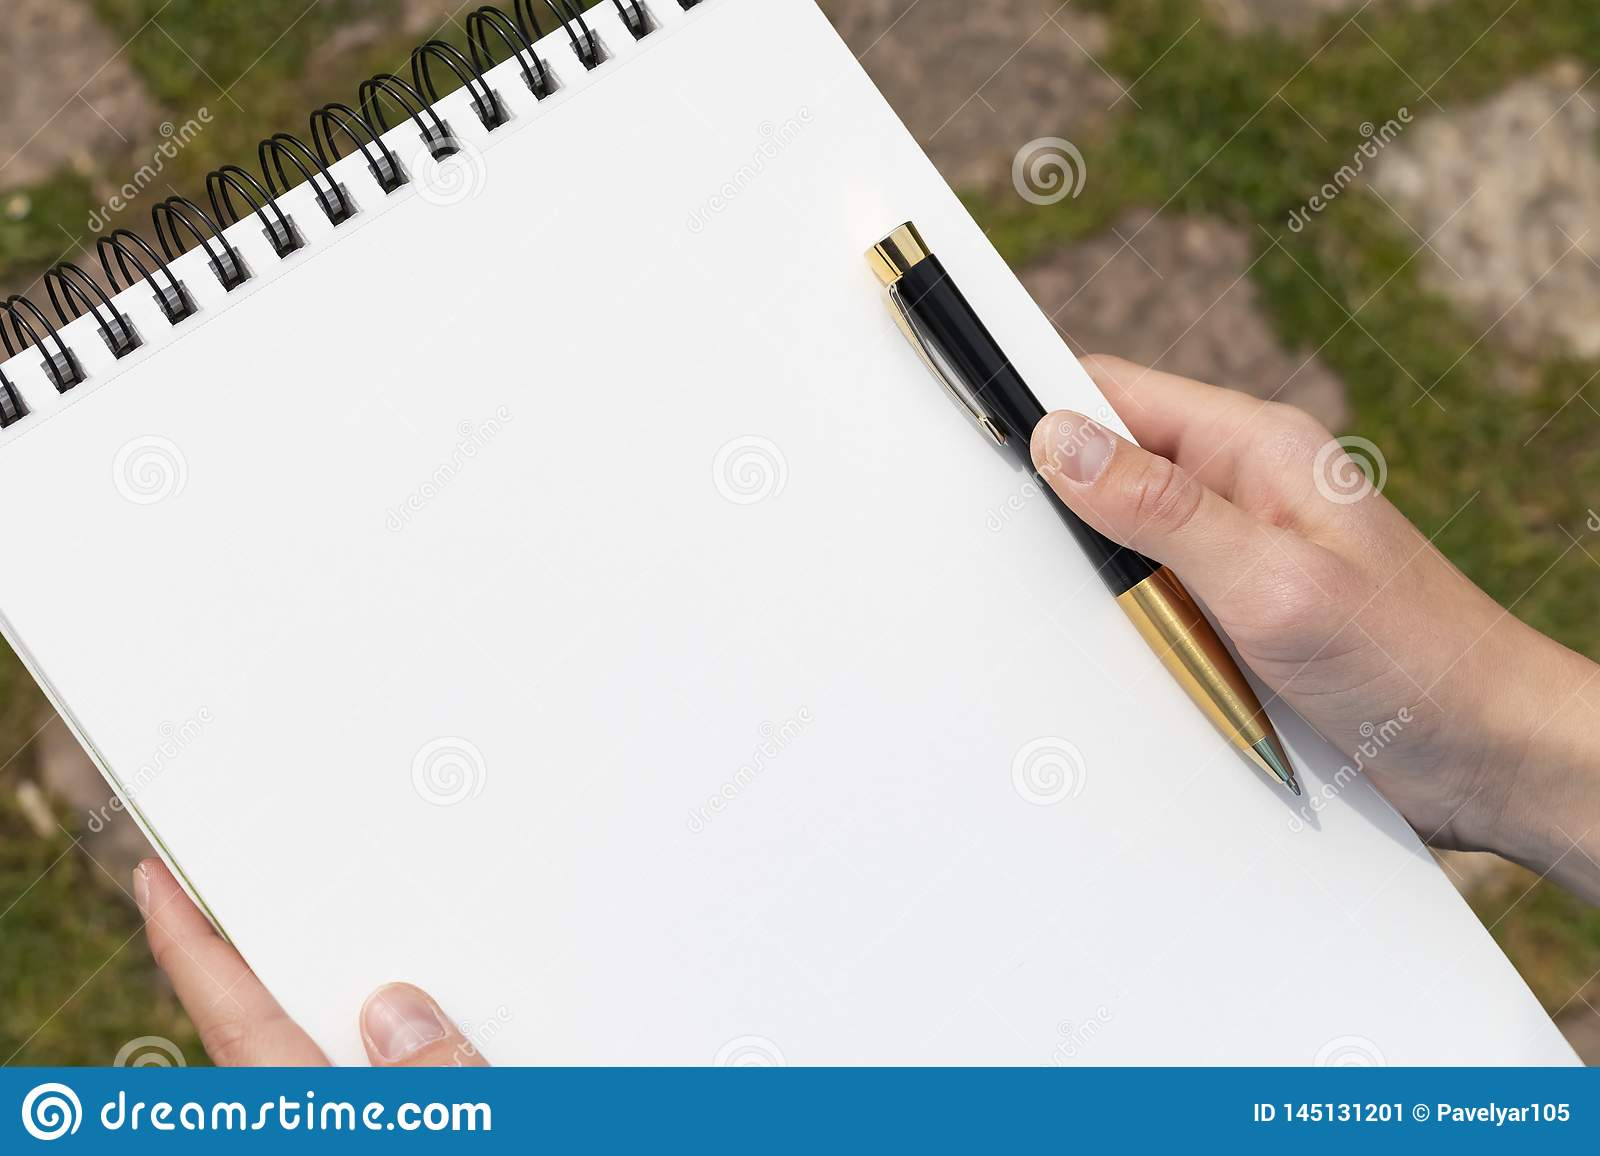 Boy`s hand with a pencil over an open notepad in the park